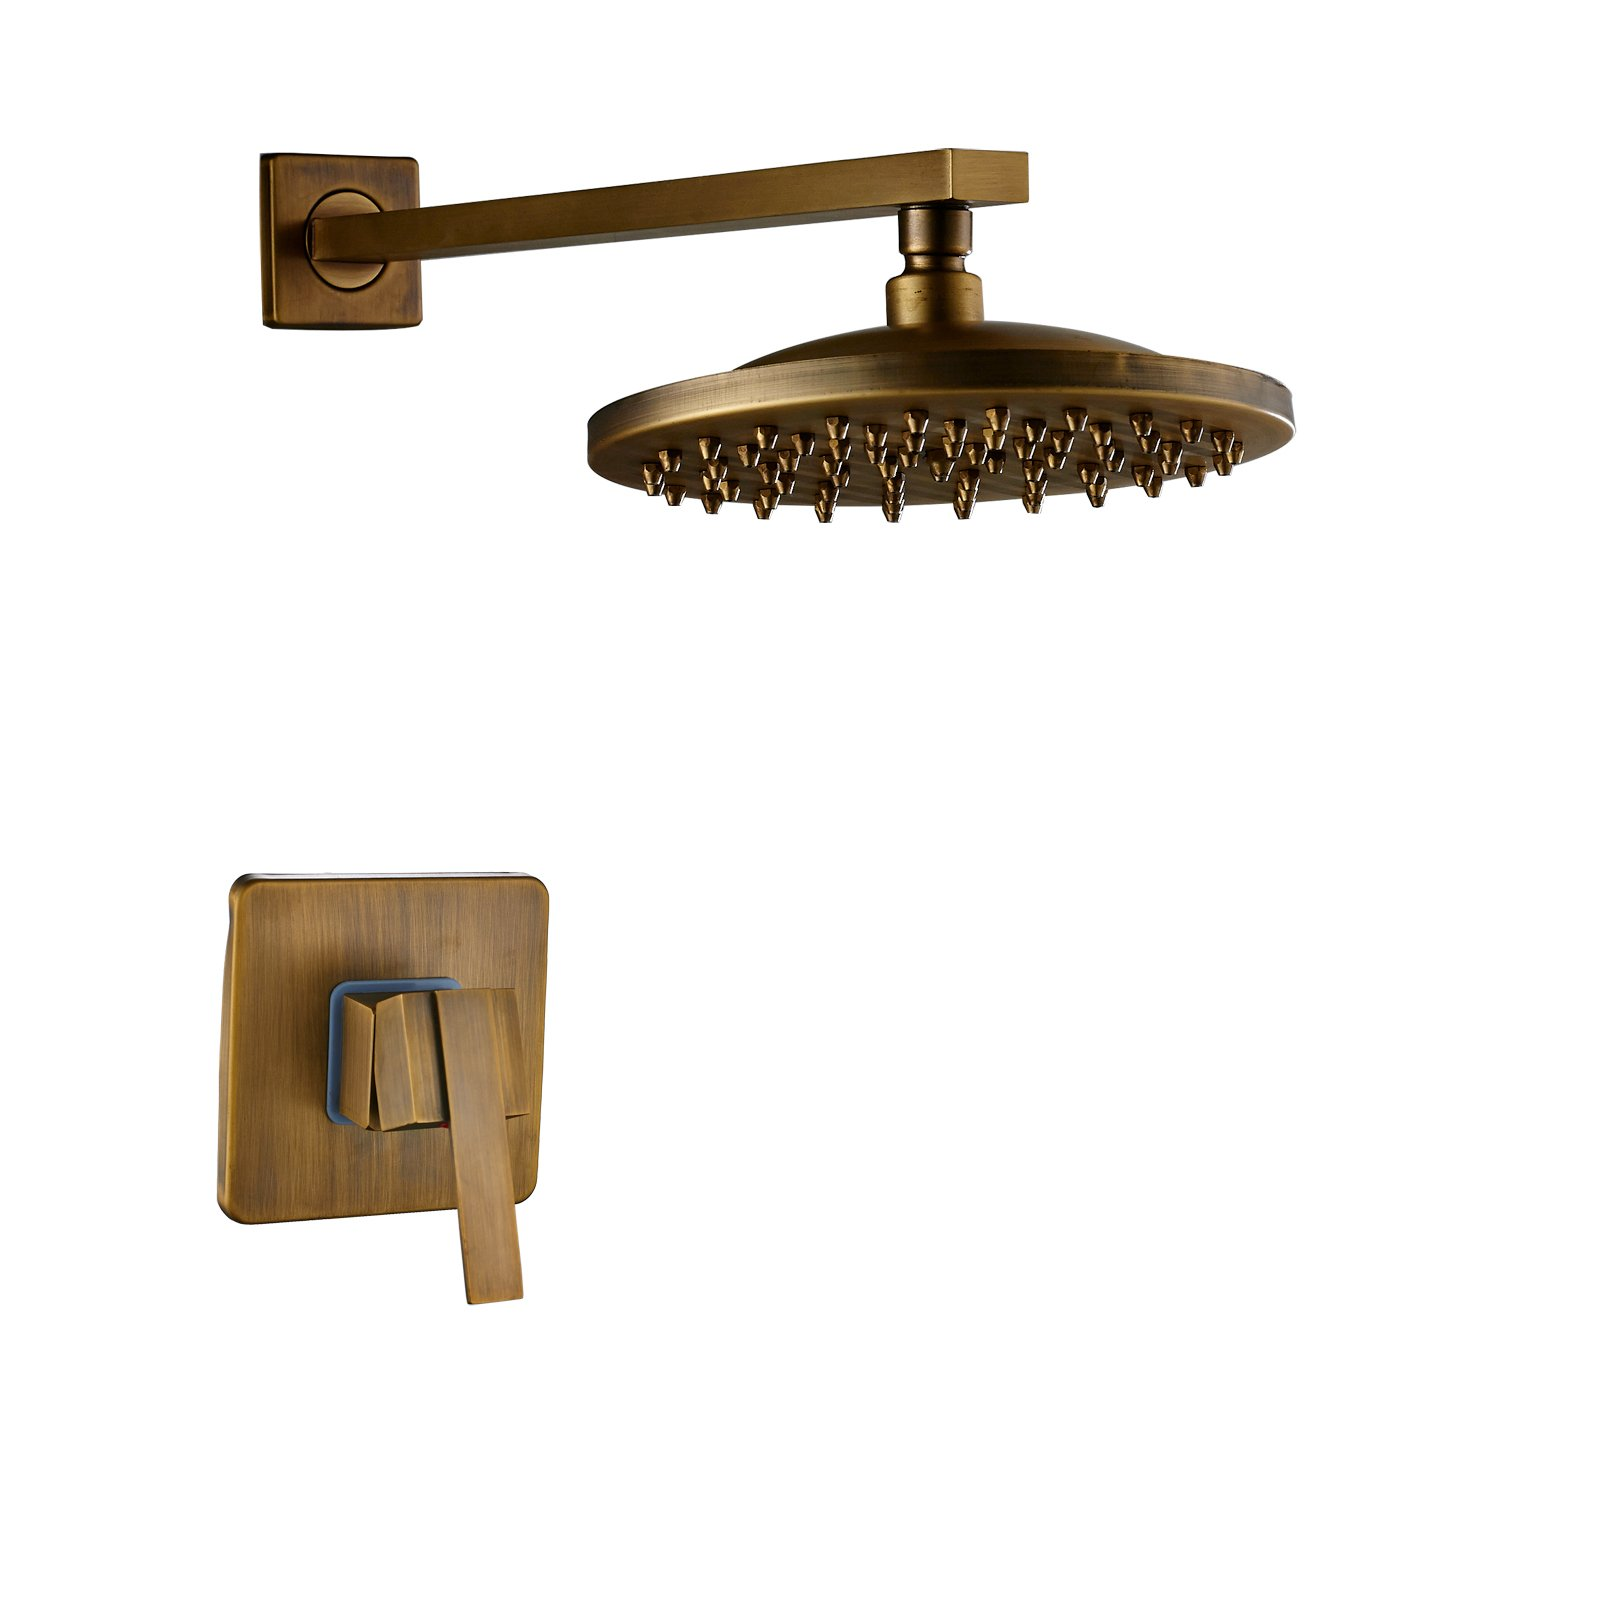 Rozin Antique Brass Bathroom 8-inch Rainfall Shower Head with Single Handle Mixer Valve Wall Mounted by Rozin